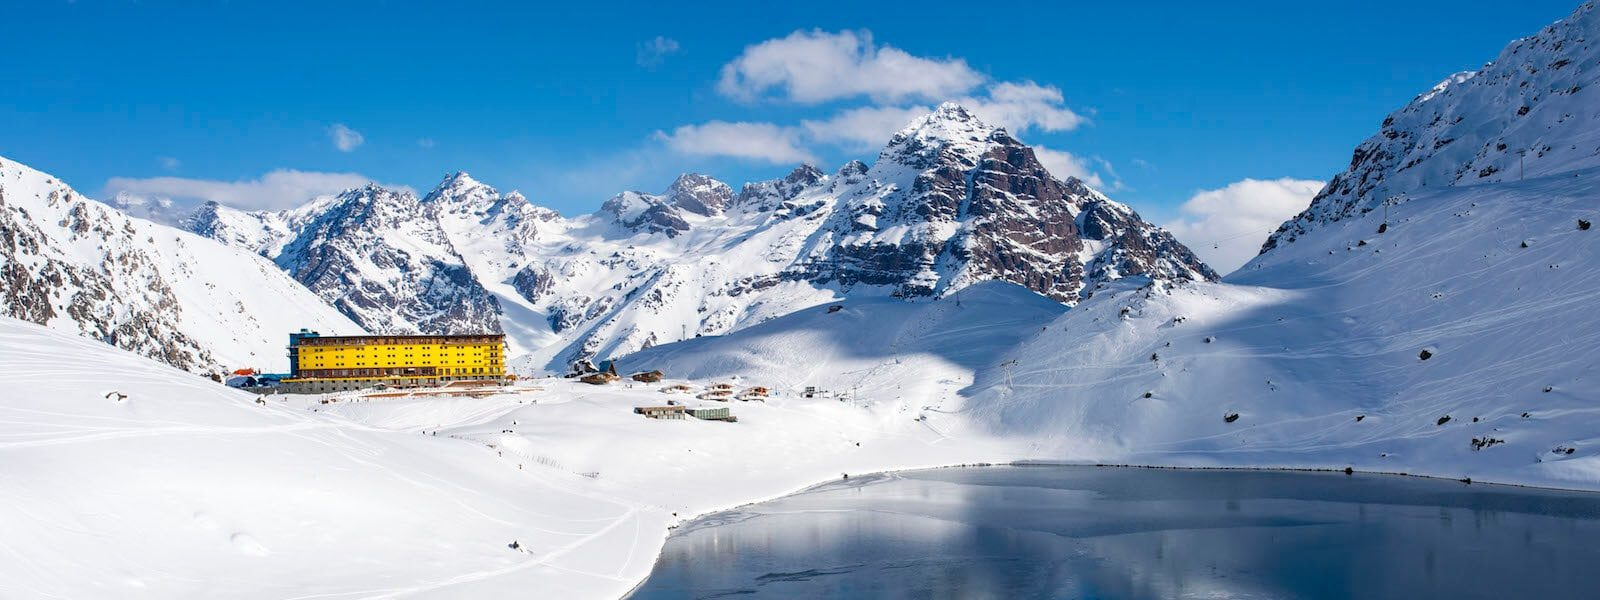 bright yellow hotel nestled in a snowy valley in the mountains of Portillo, Chile